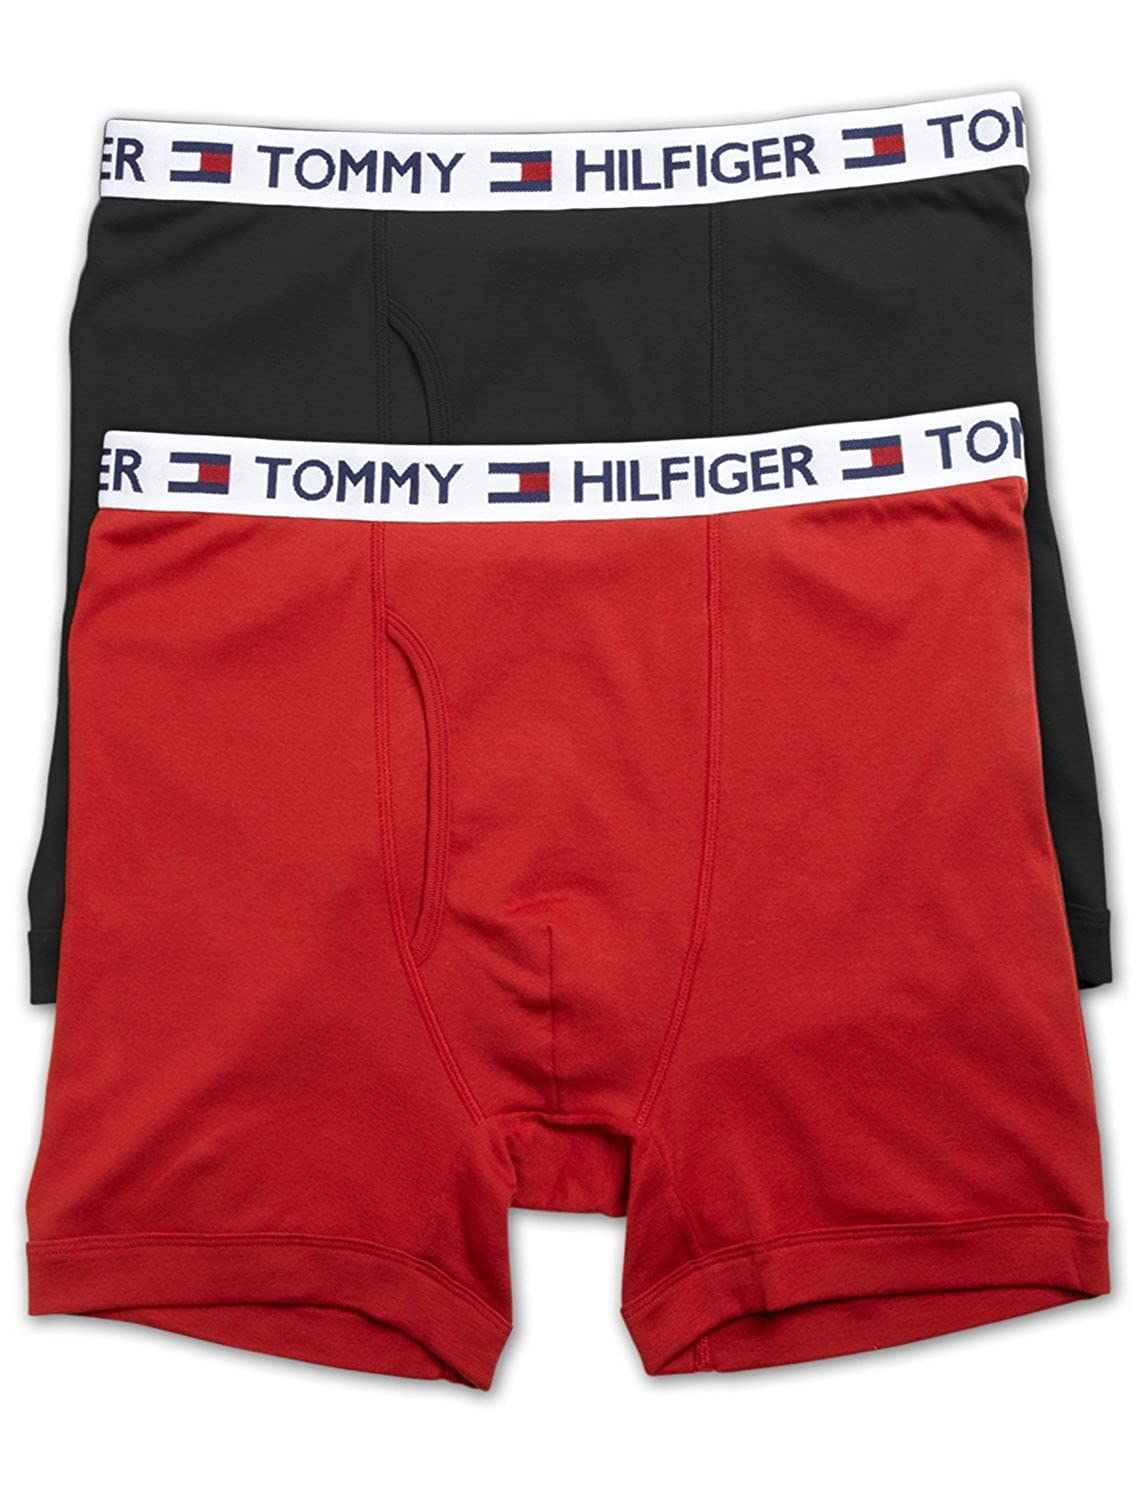 Tommy Hilfiger Big and Tall 2-Pack Knit Boxer Briefs (2X, Black Red)